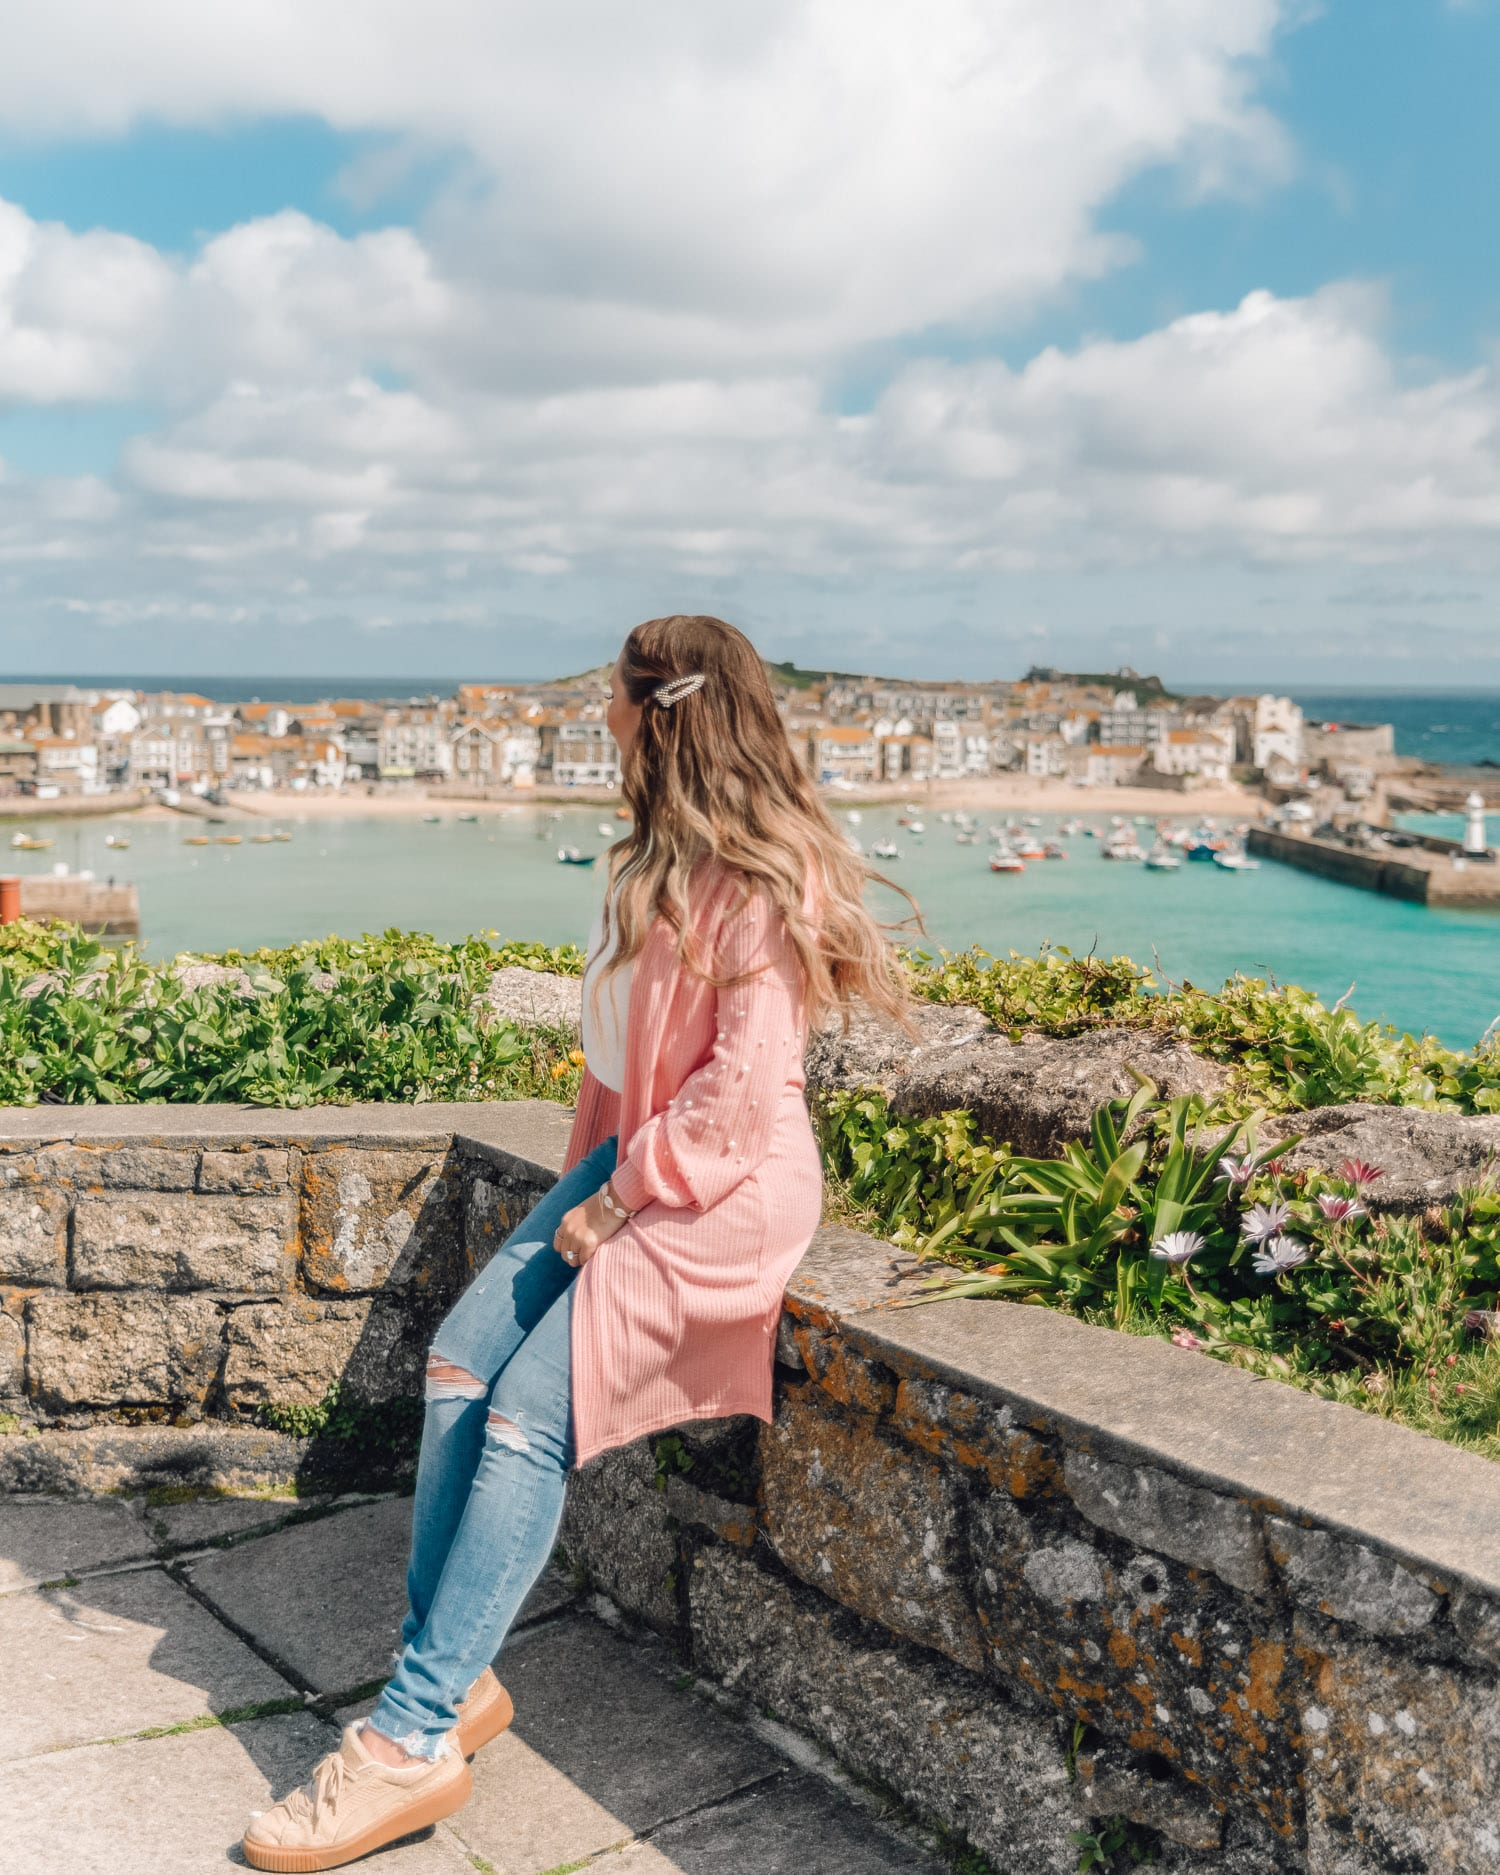 Beautiful viewpoint for photos in St Ives | Most Instagrammable Places in Cornwall, UK